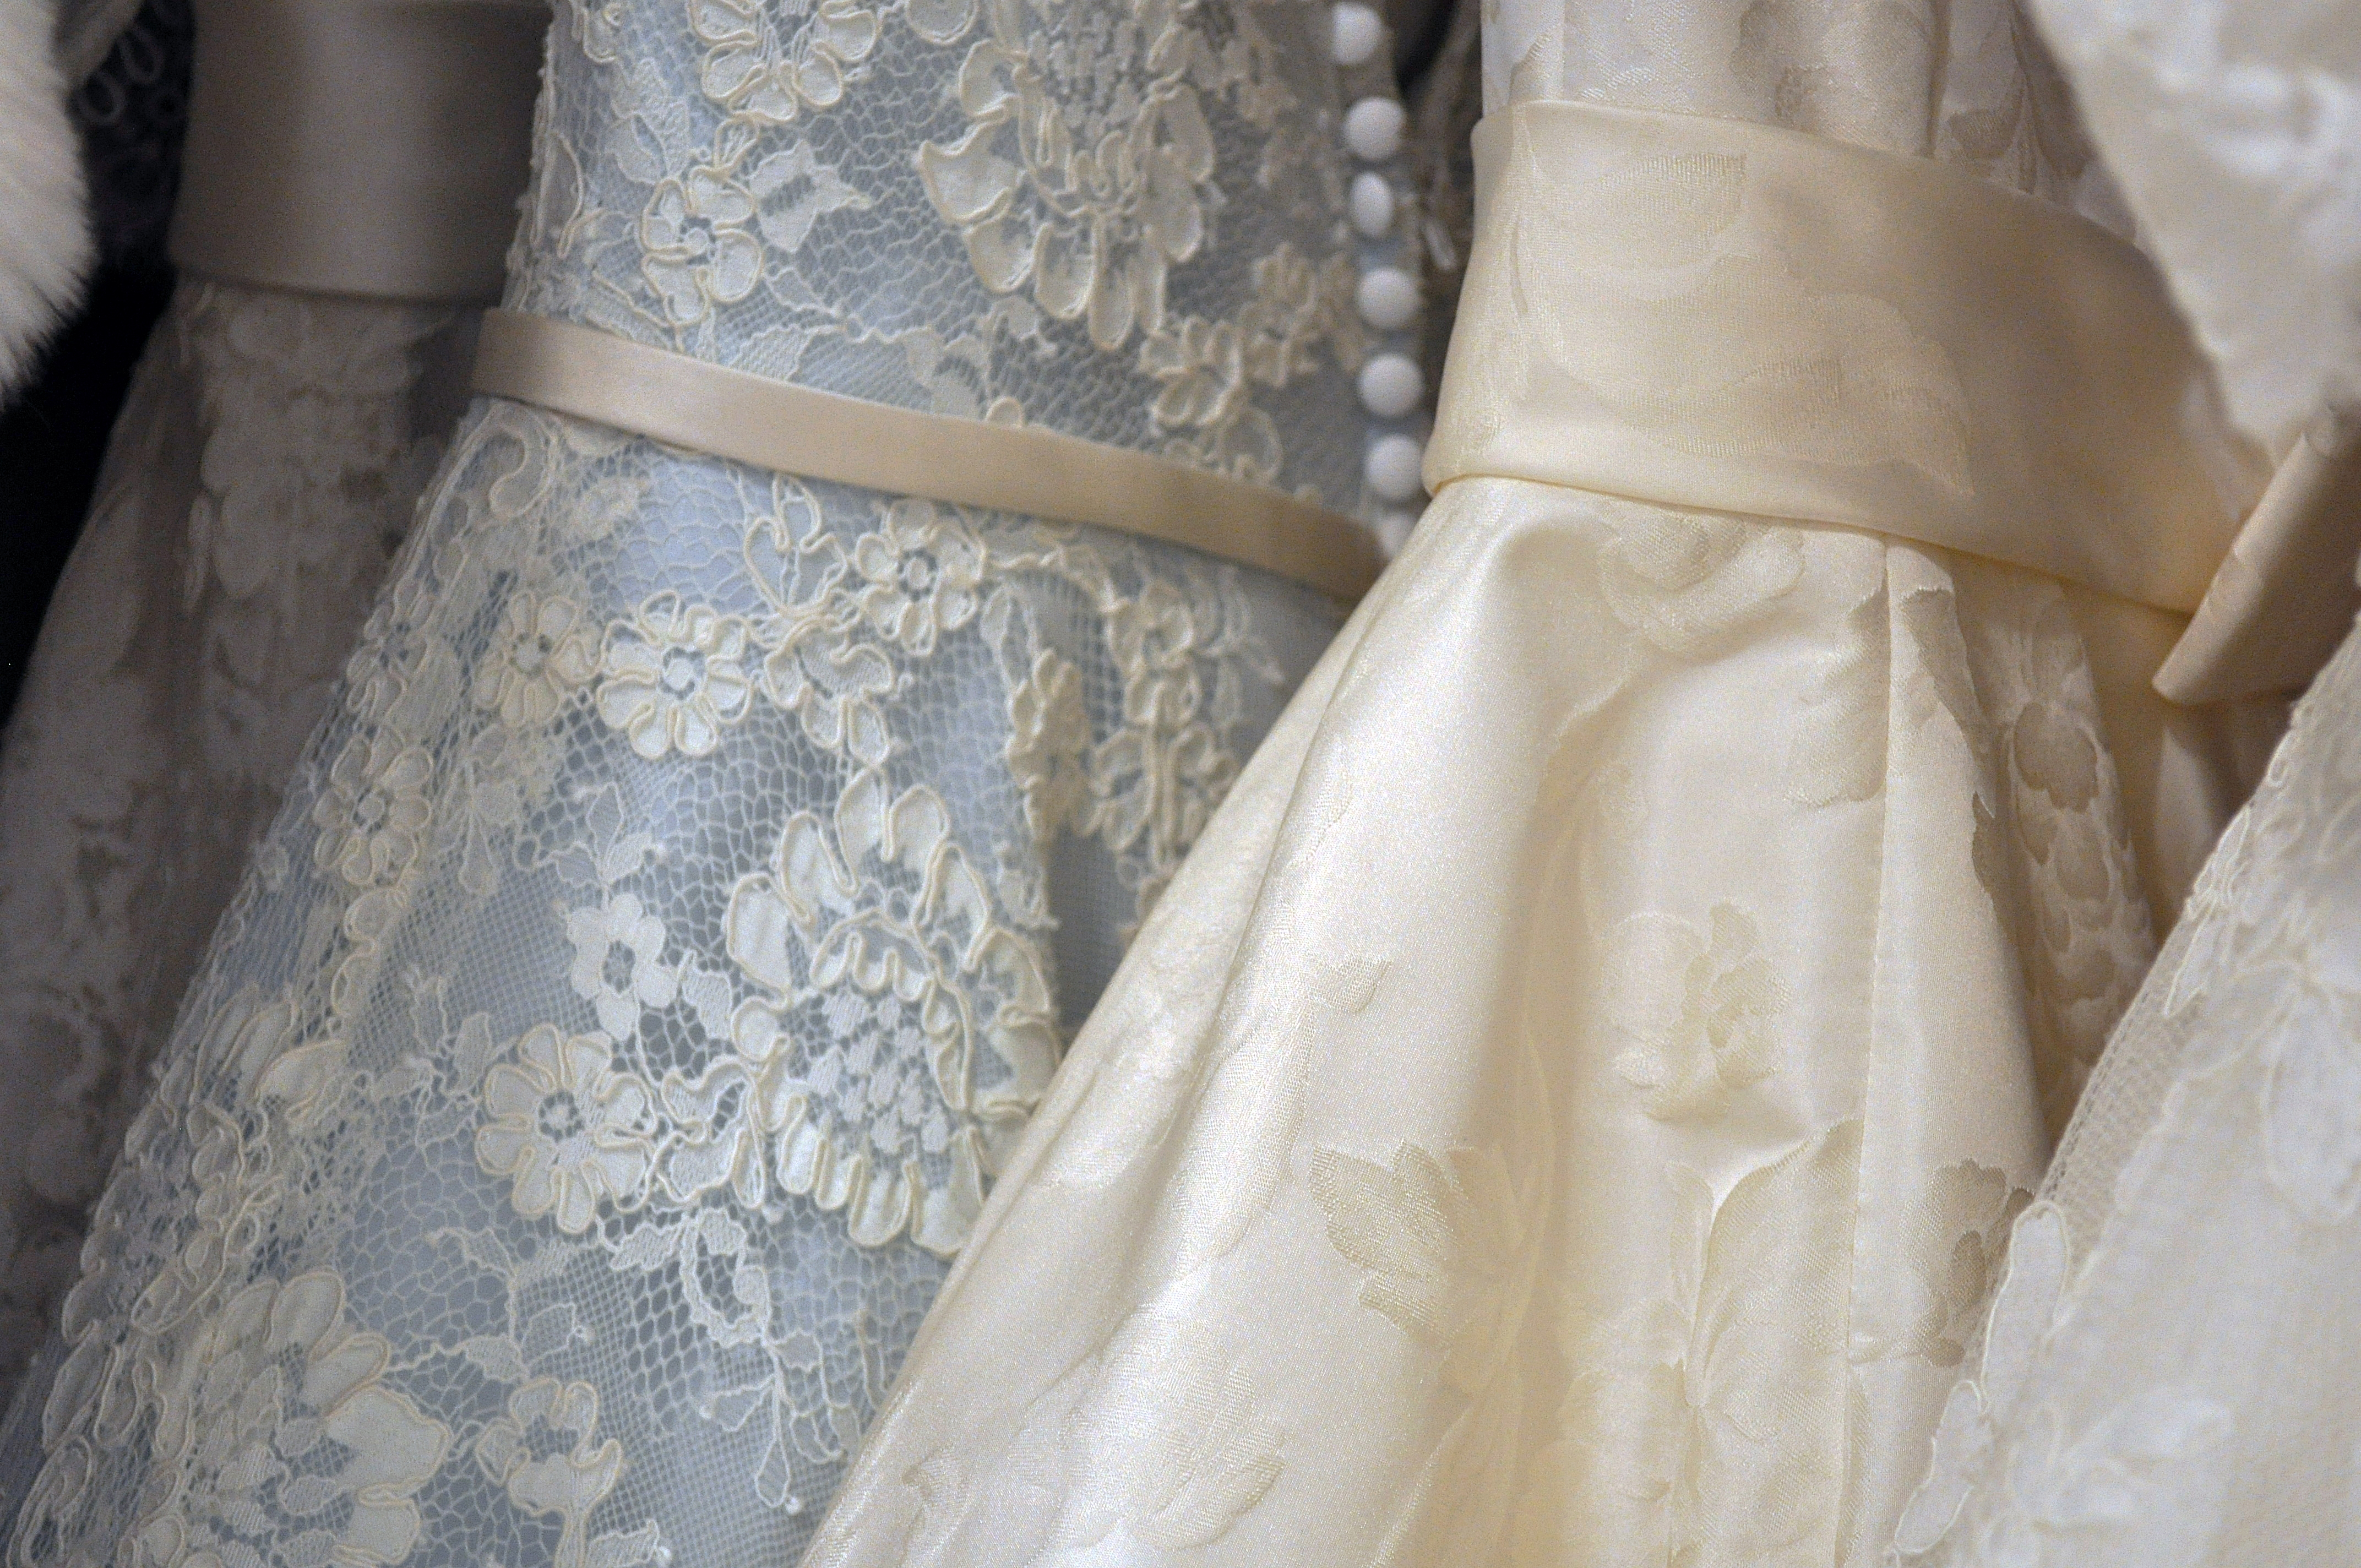 Beautiful wedding dresses in an English town wedding shop. Fine detail, lace and creams meant close and low toned shots came out beautiful. There's something very sleek and calming about the image and dresses.